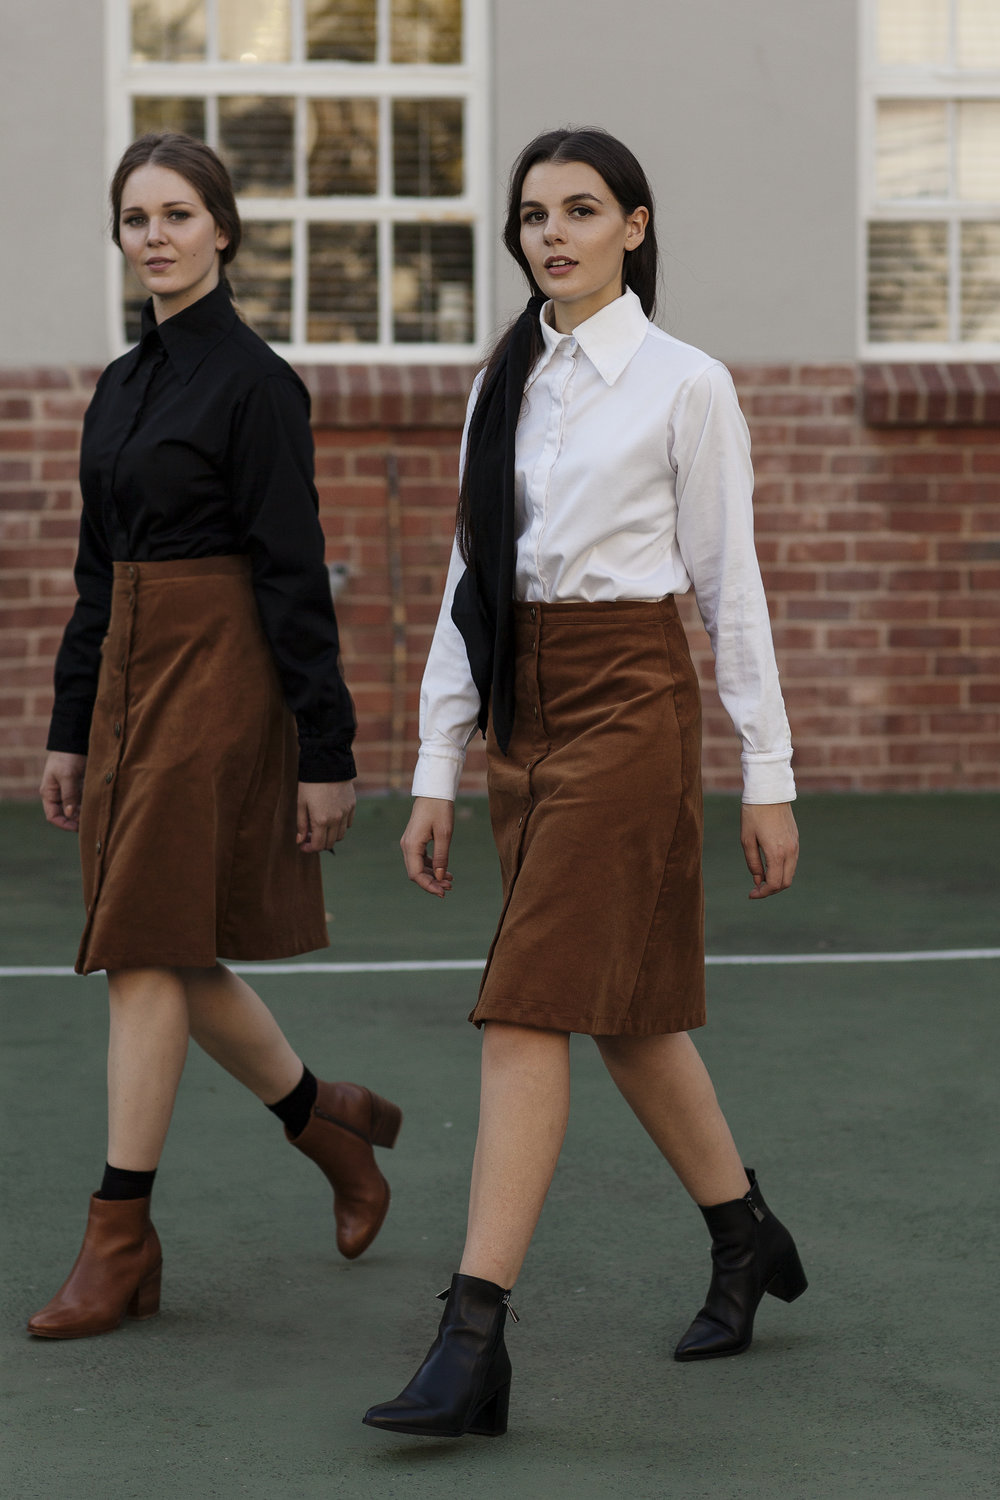 Blair Skirt & Classic Shirts 2.jpg